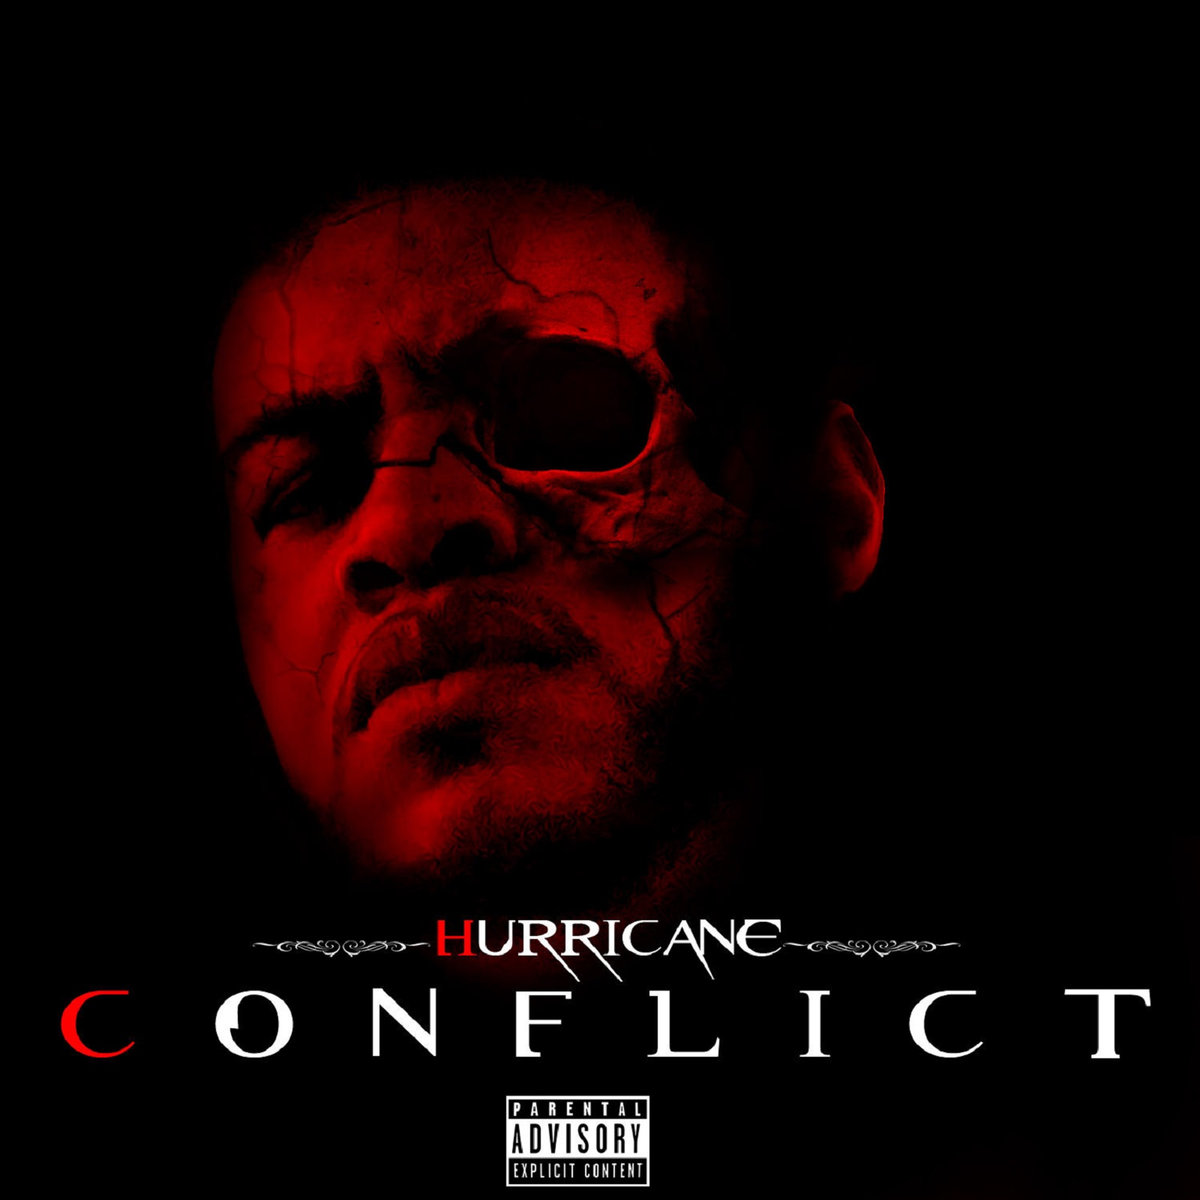 Hurricane - Conflict LP - Album Art